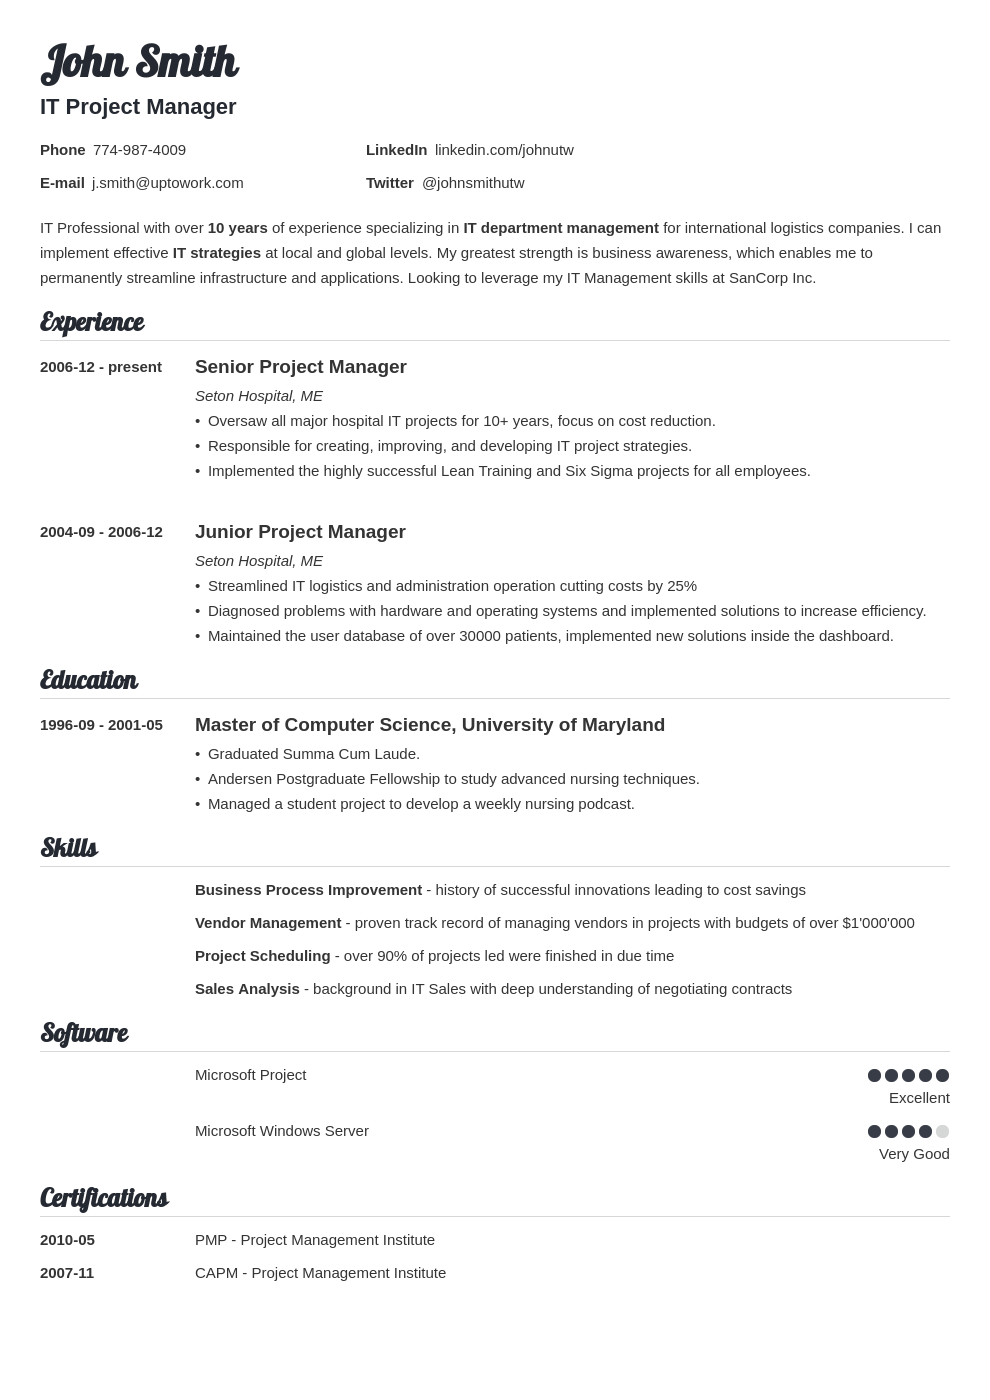 professional resume template valera - Resume Samples